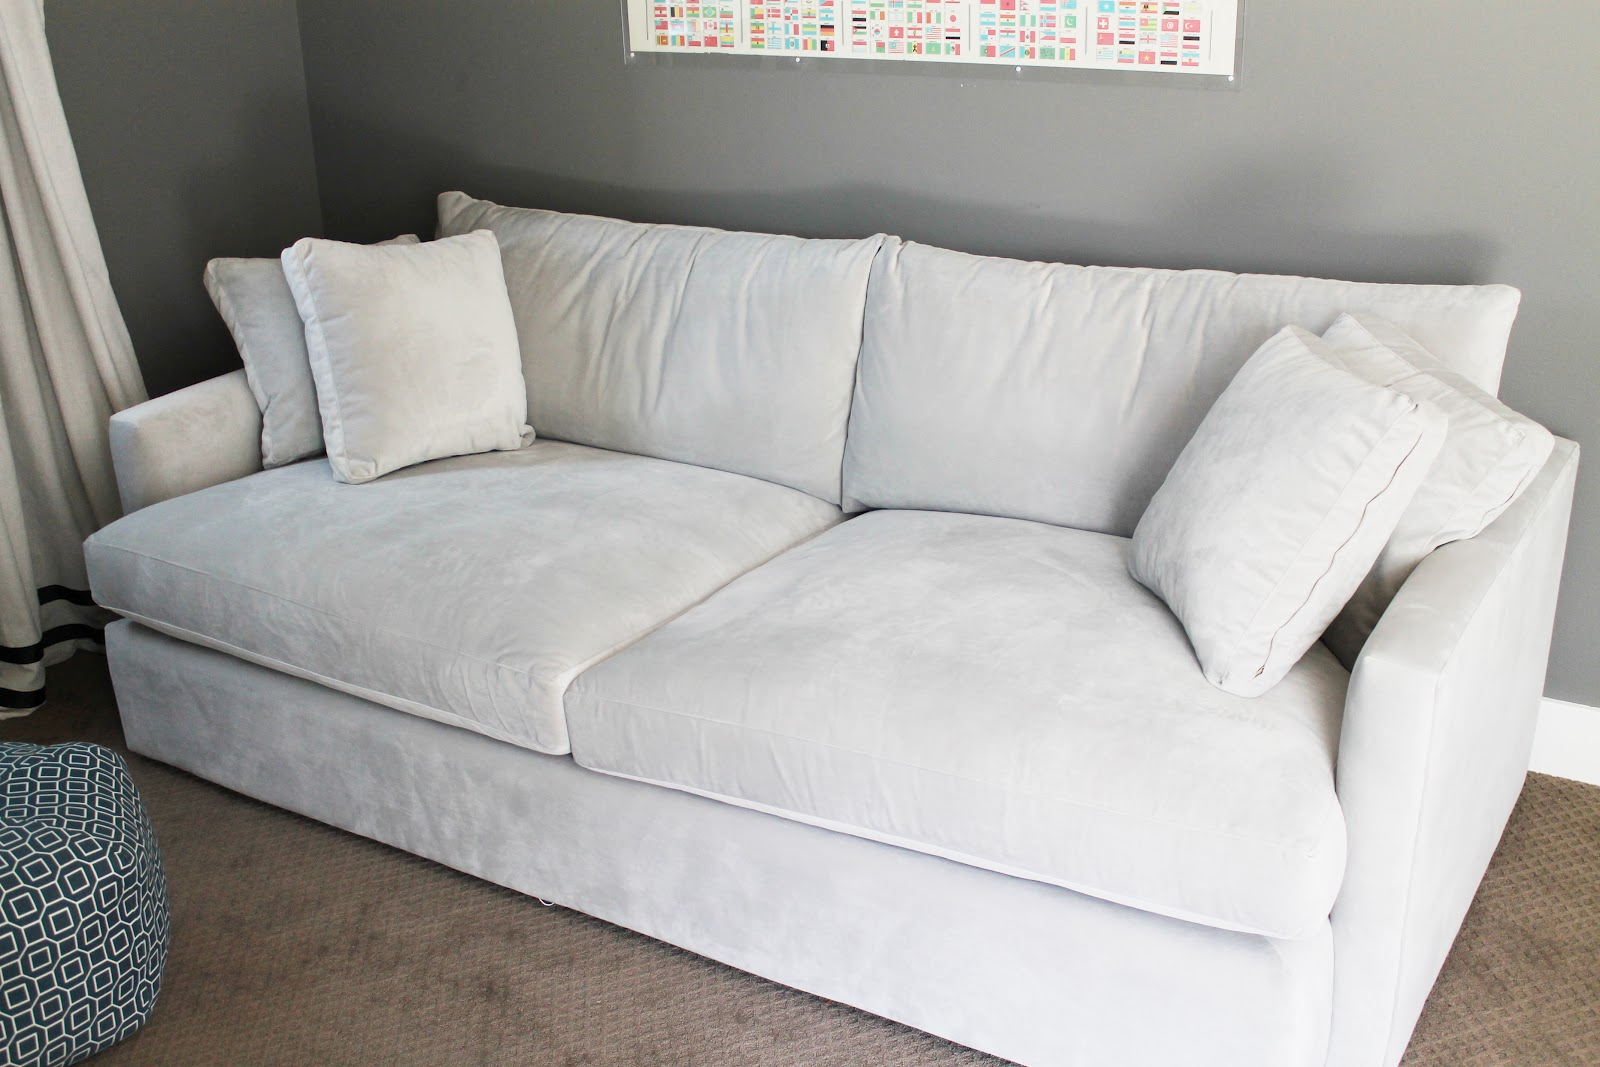 Crate and Barrel Couch | Slipcover Crate and Barrel | Discontinued Crate and Barrel